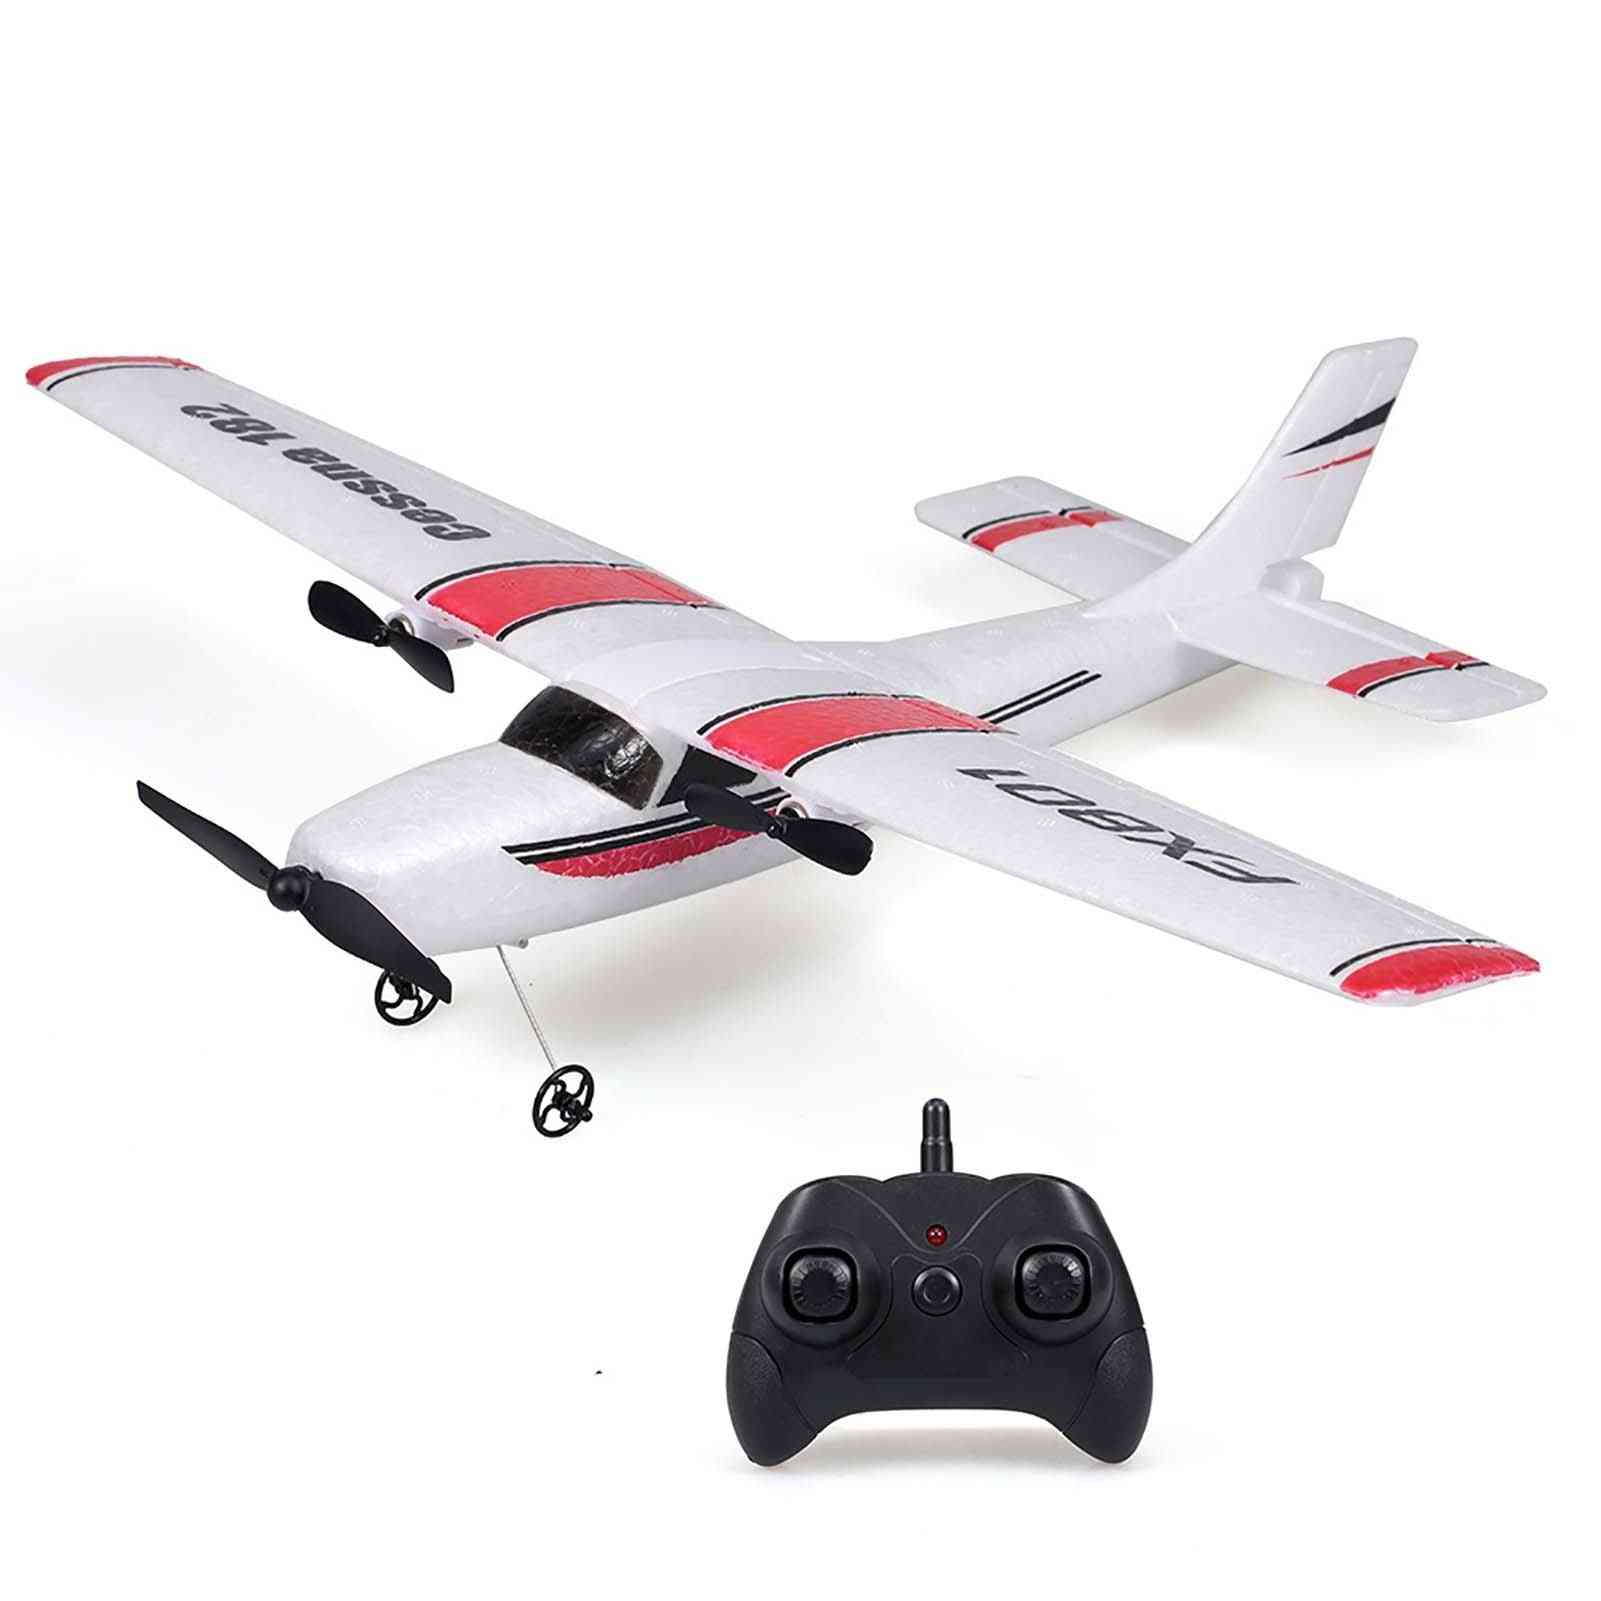 Rc Plane, Airplane Durable, Outdoor Aircraft Model For Beginner